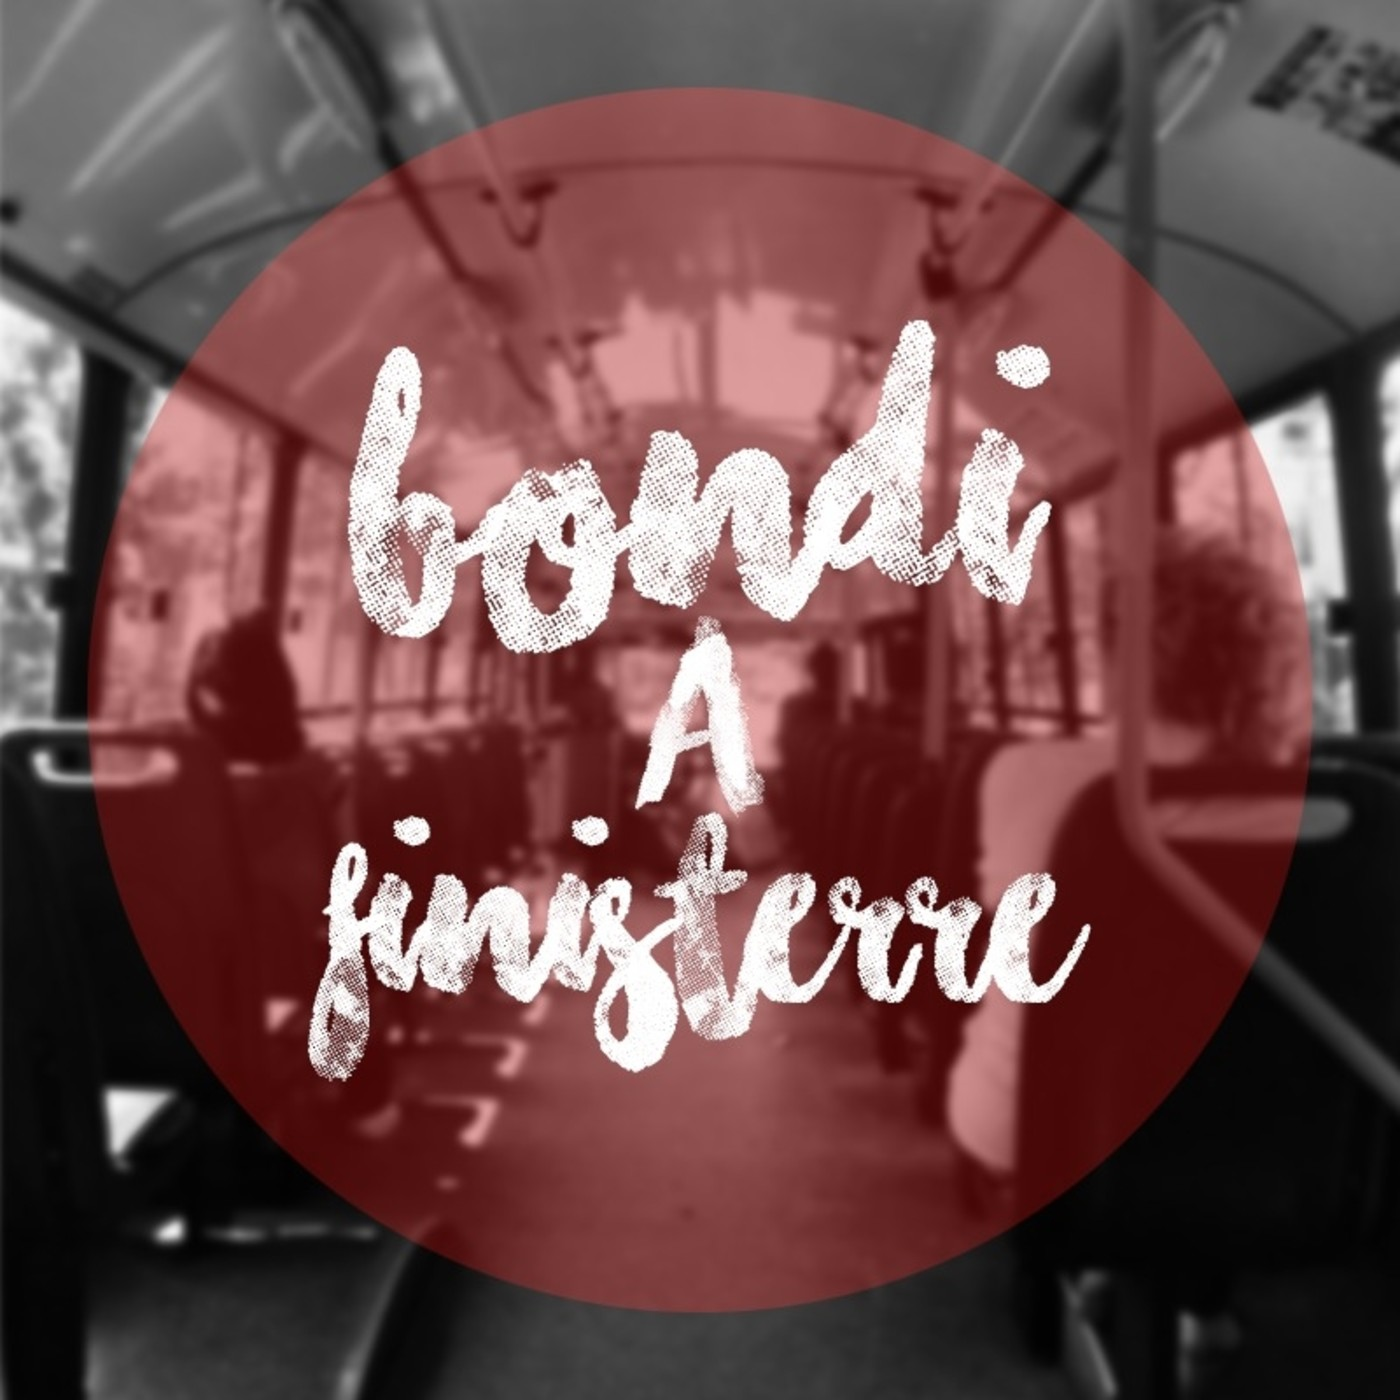 Escucha el canal bondi a finisterre fm 103 9 ivoox for 103 9 the fish